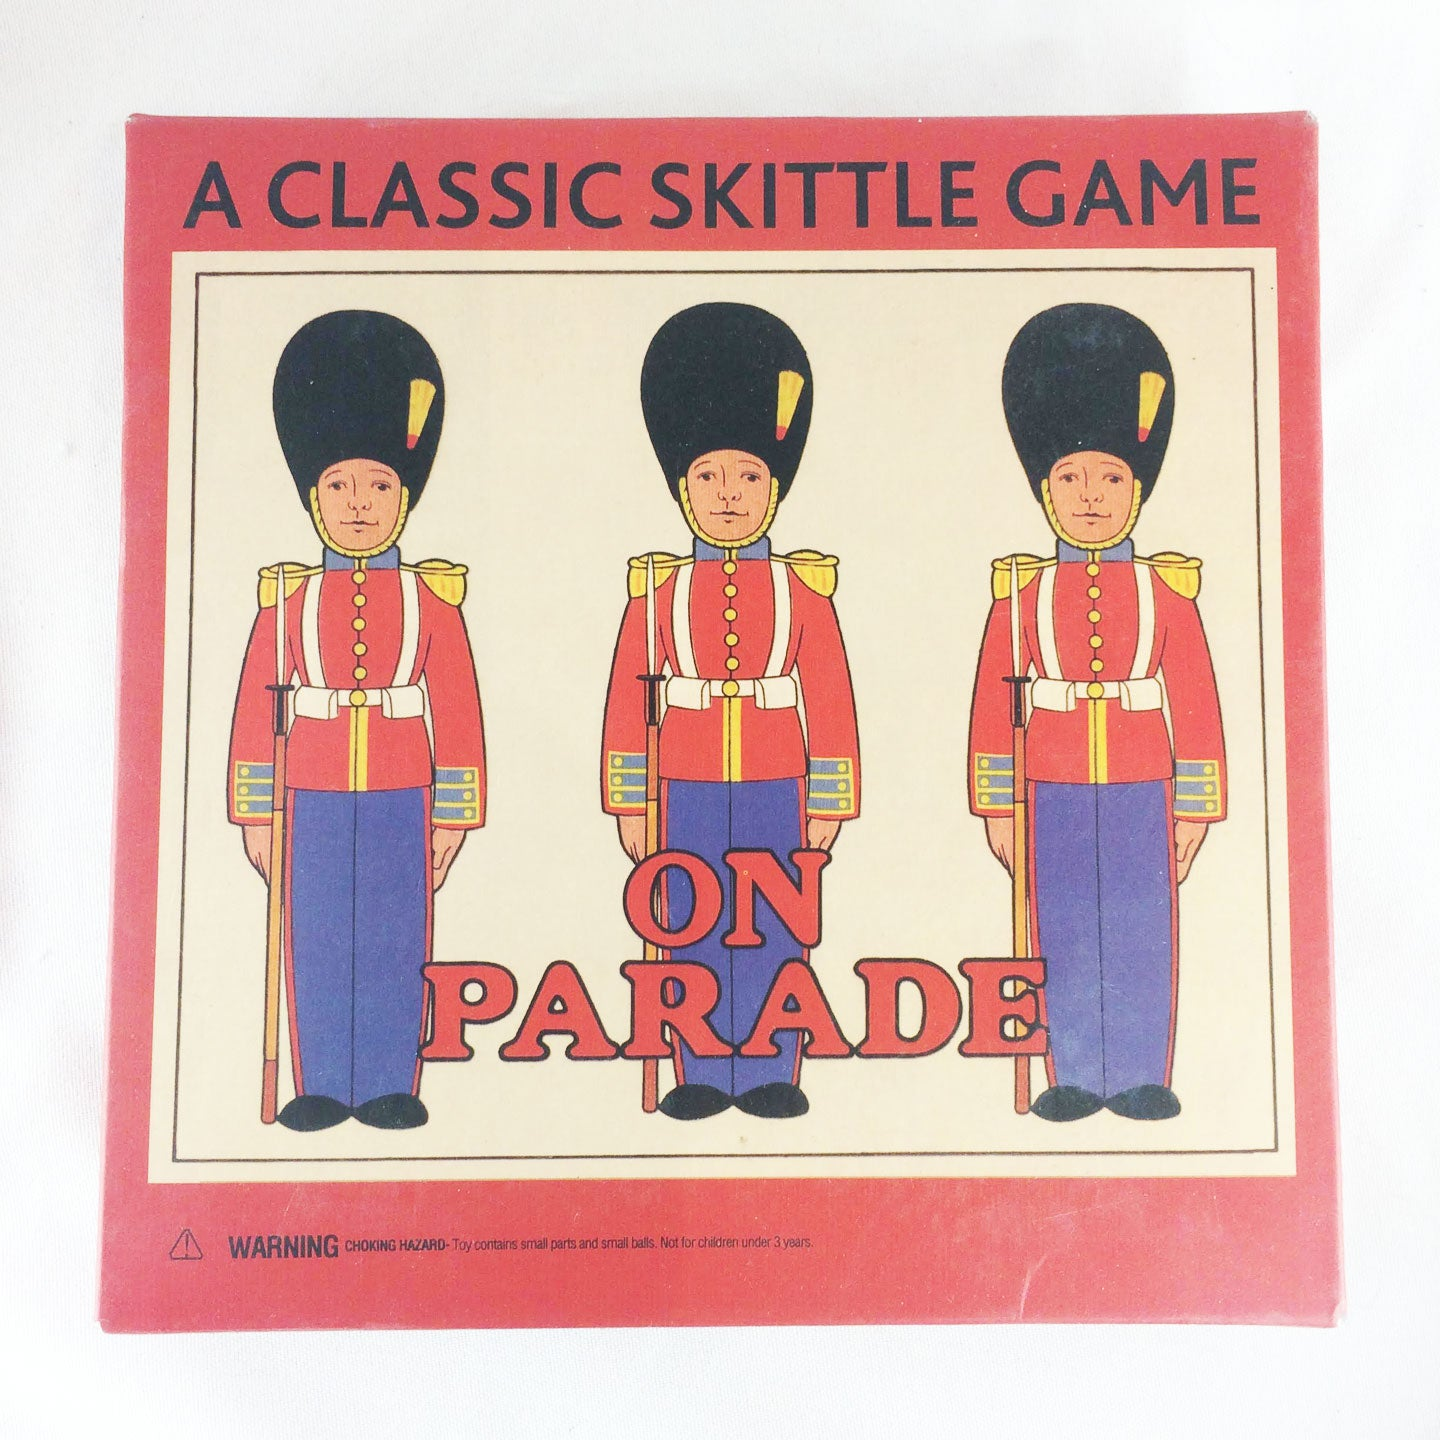 On Parade - Classic Game of Soldier Skittles